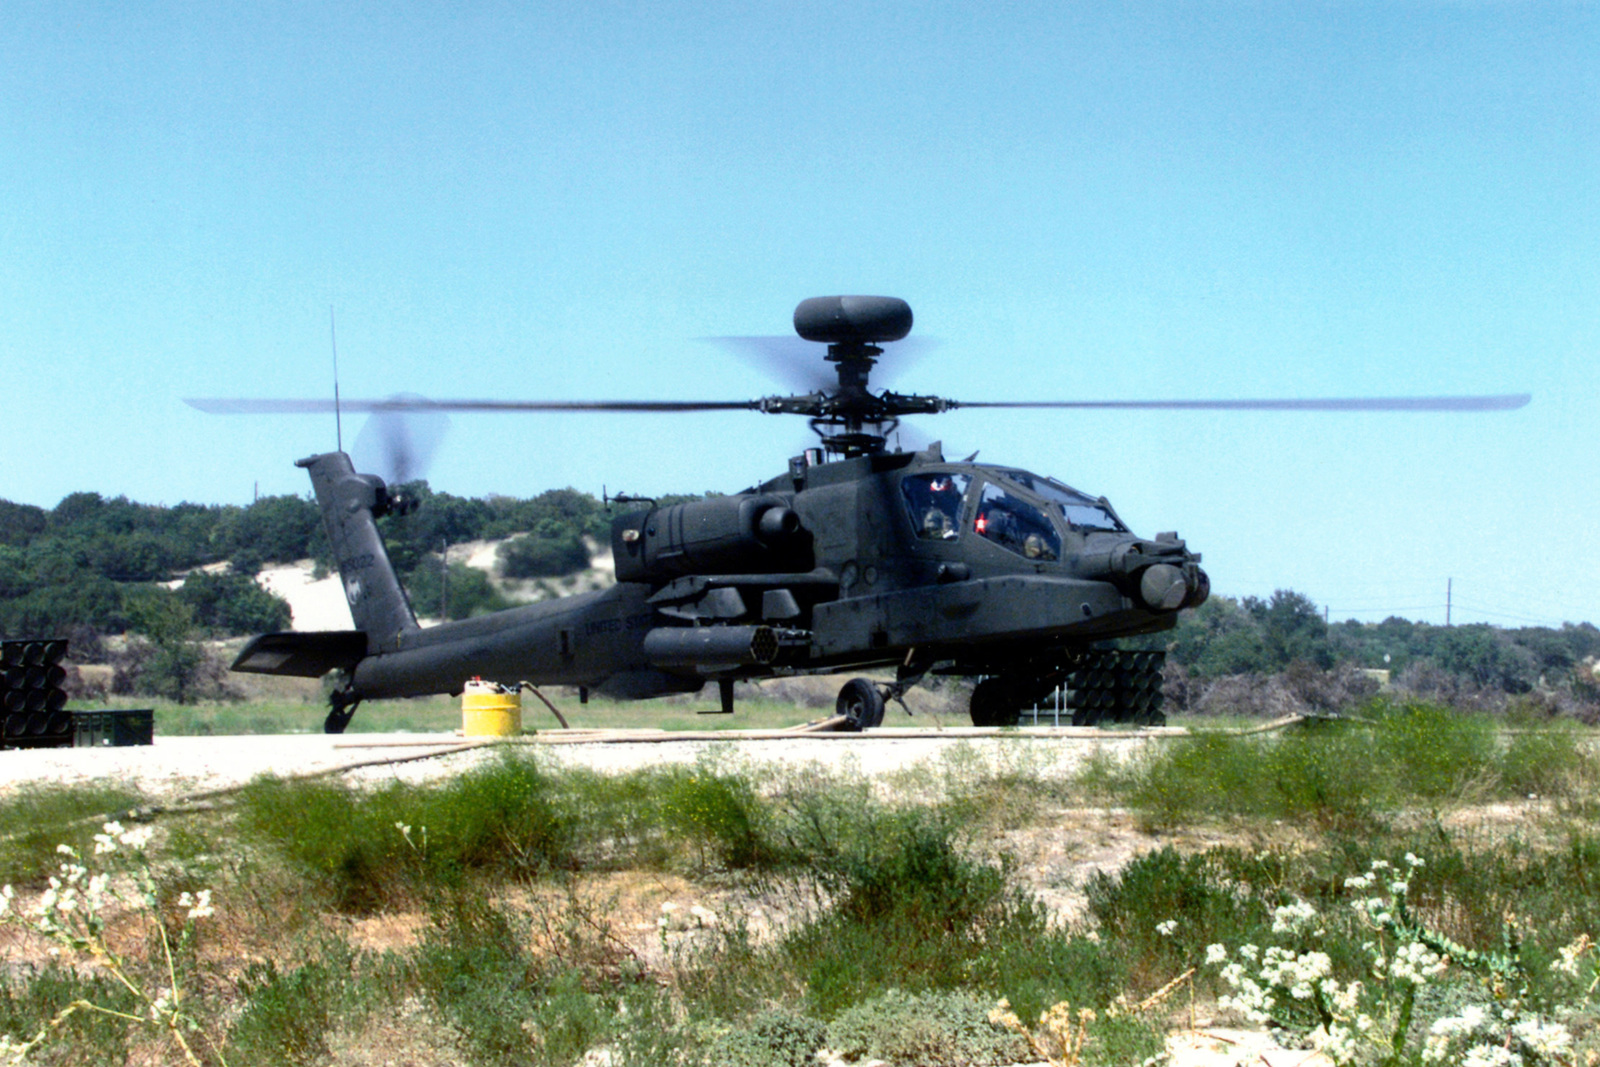 An AH-64D Apache Longbow Helicopter from the 1ST Battalion, 227th Aviation Regiment, First Cavalry Division lands at the Dalton/Henson Range Complex at Fort Hood, Texas, to reload and refuel during an annual aerial gunnery exercise. (Duplicate image, see also DDSD0108876 or search 990915A4980V022)